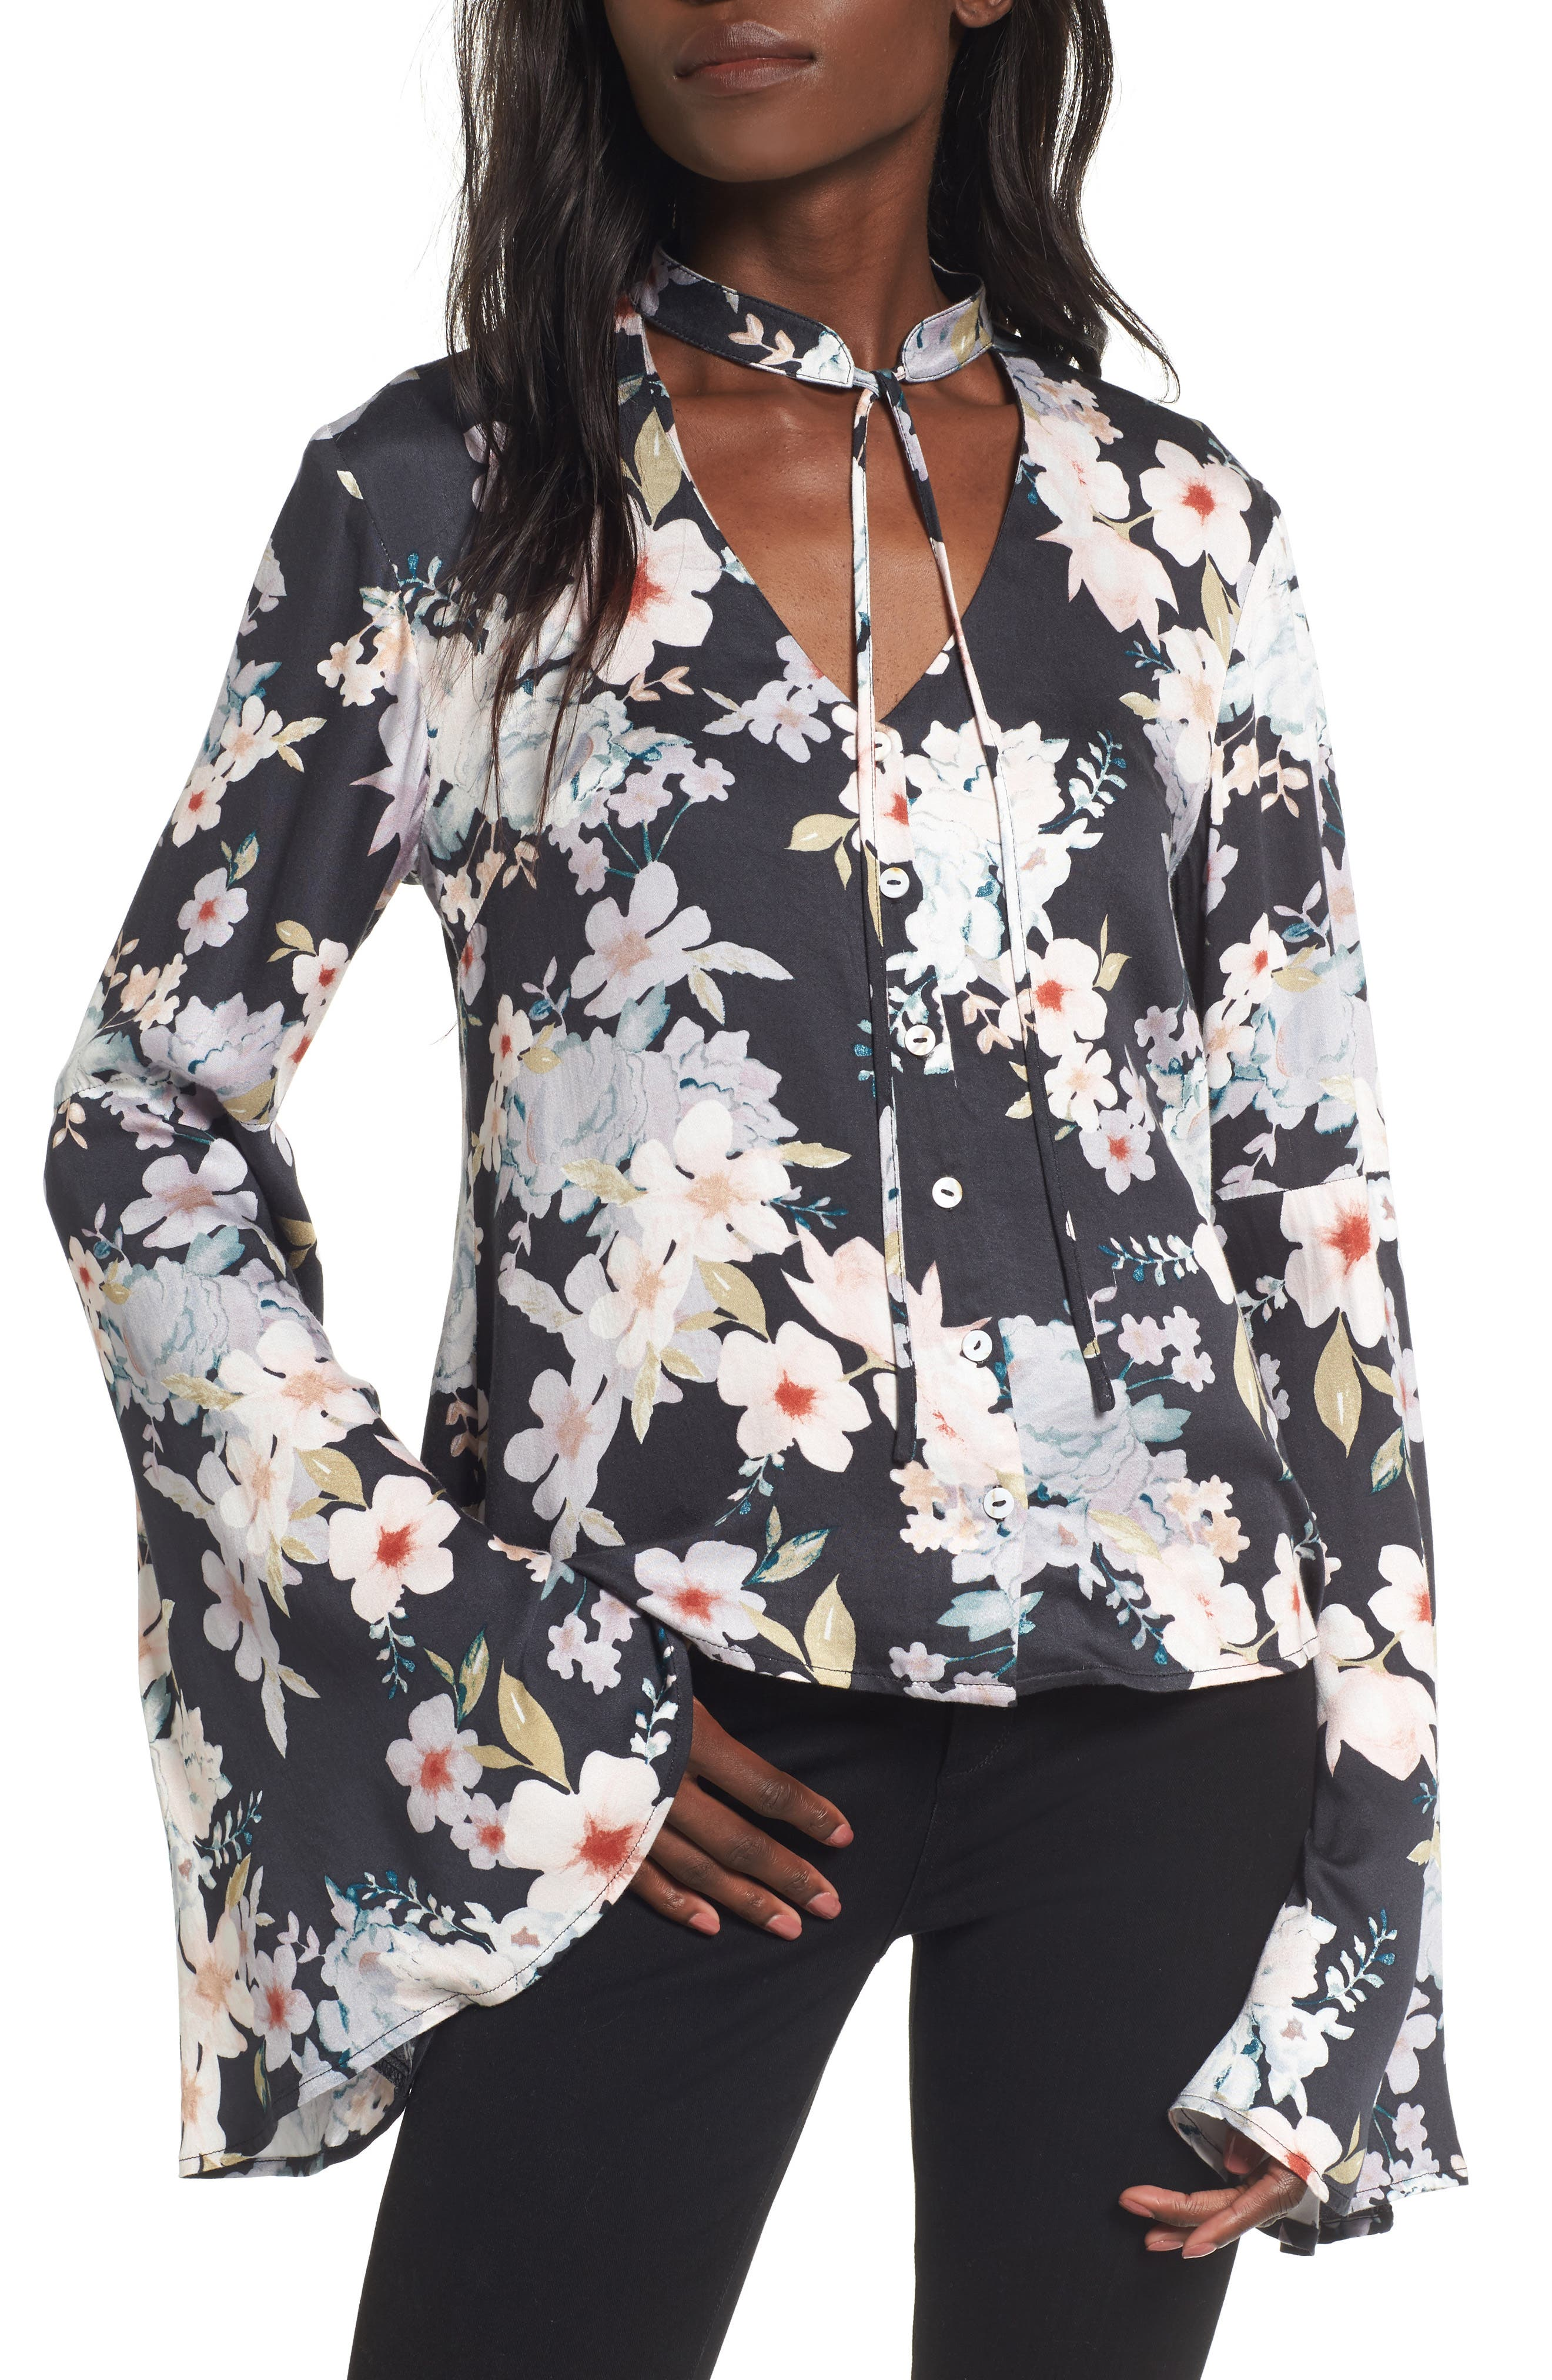 Mystic Nights Floral Blouse,                         Main,                         color, Multi